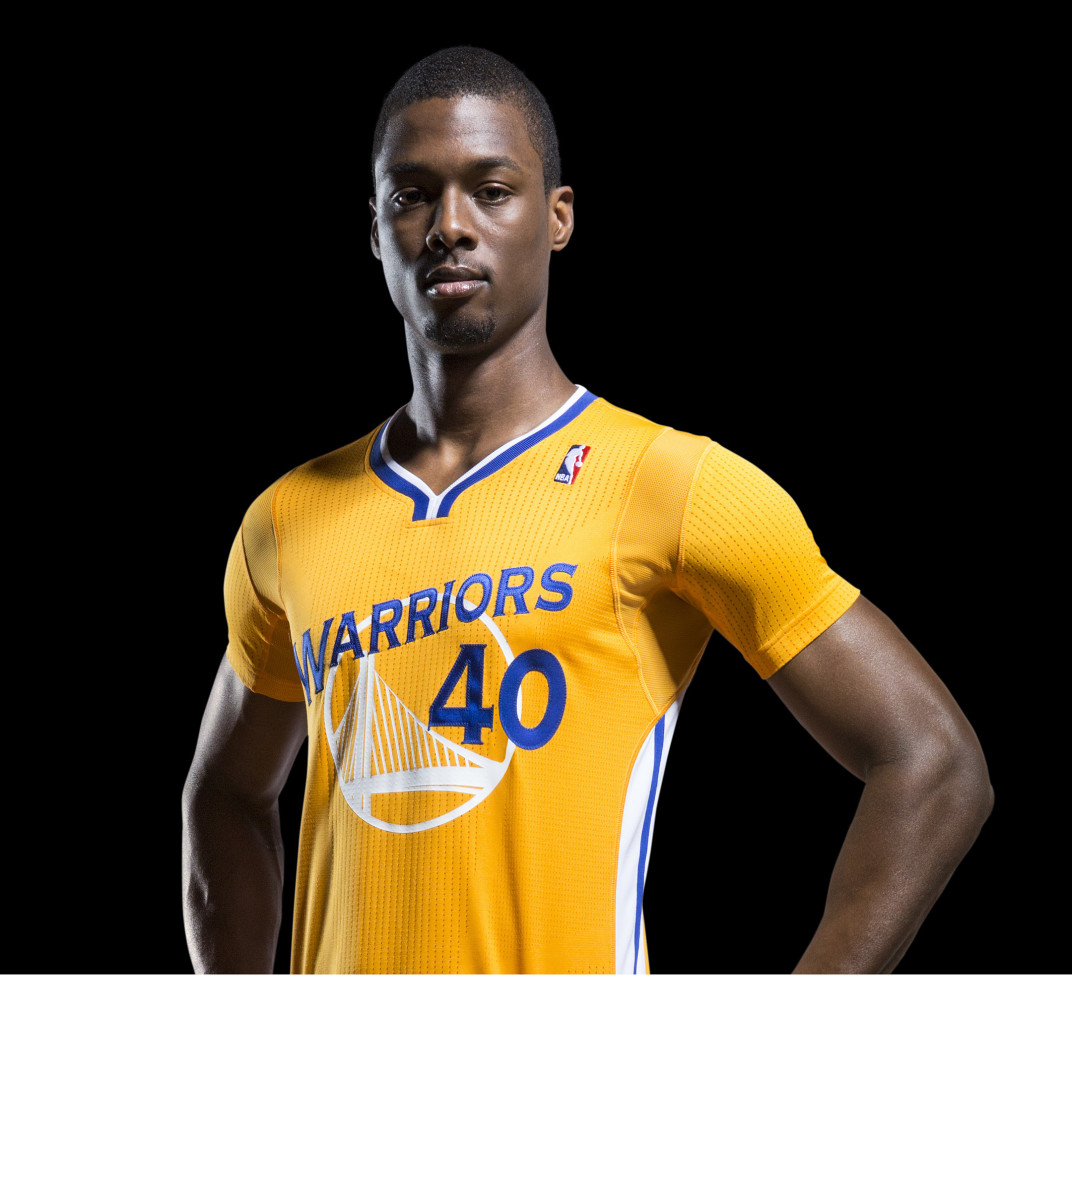 Are sleeved jerseys the future of the NBA? - Sports Illustrated